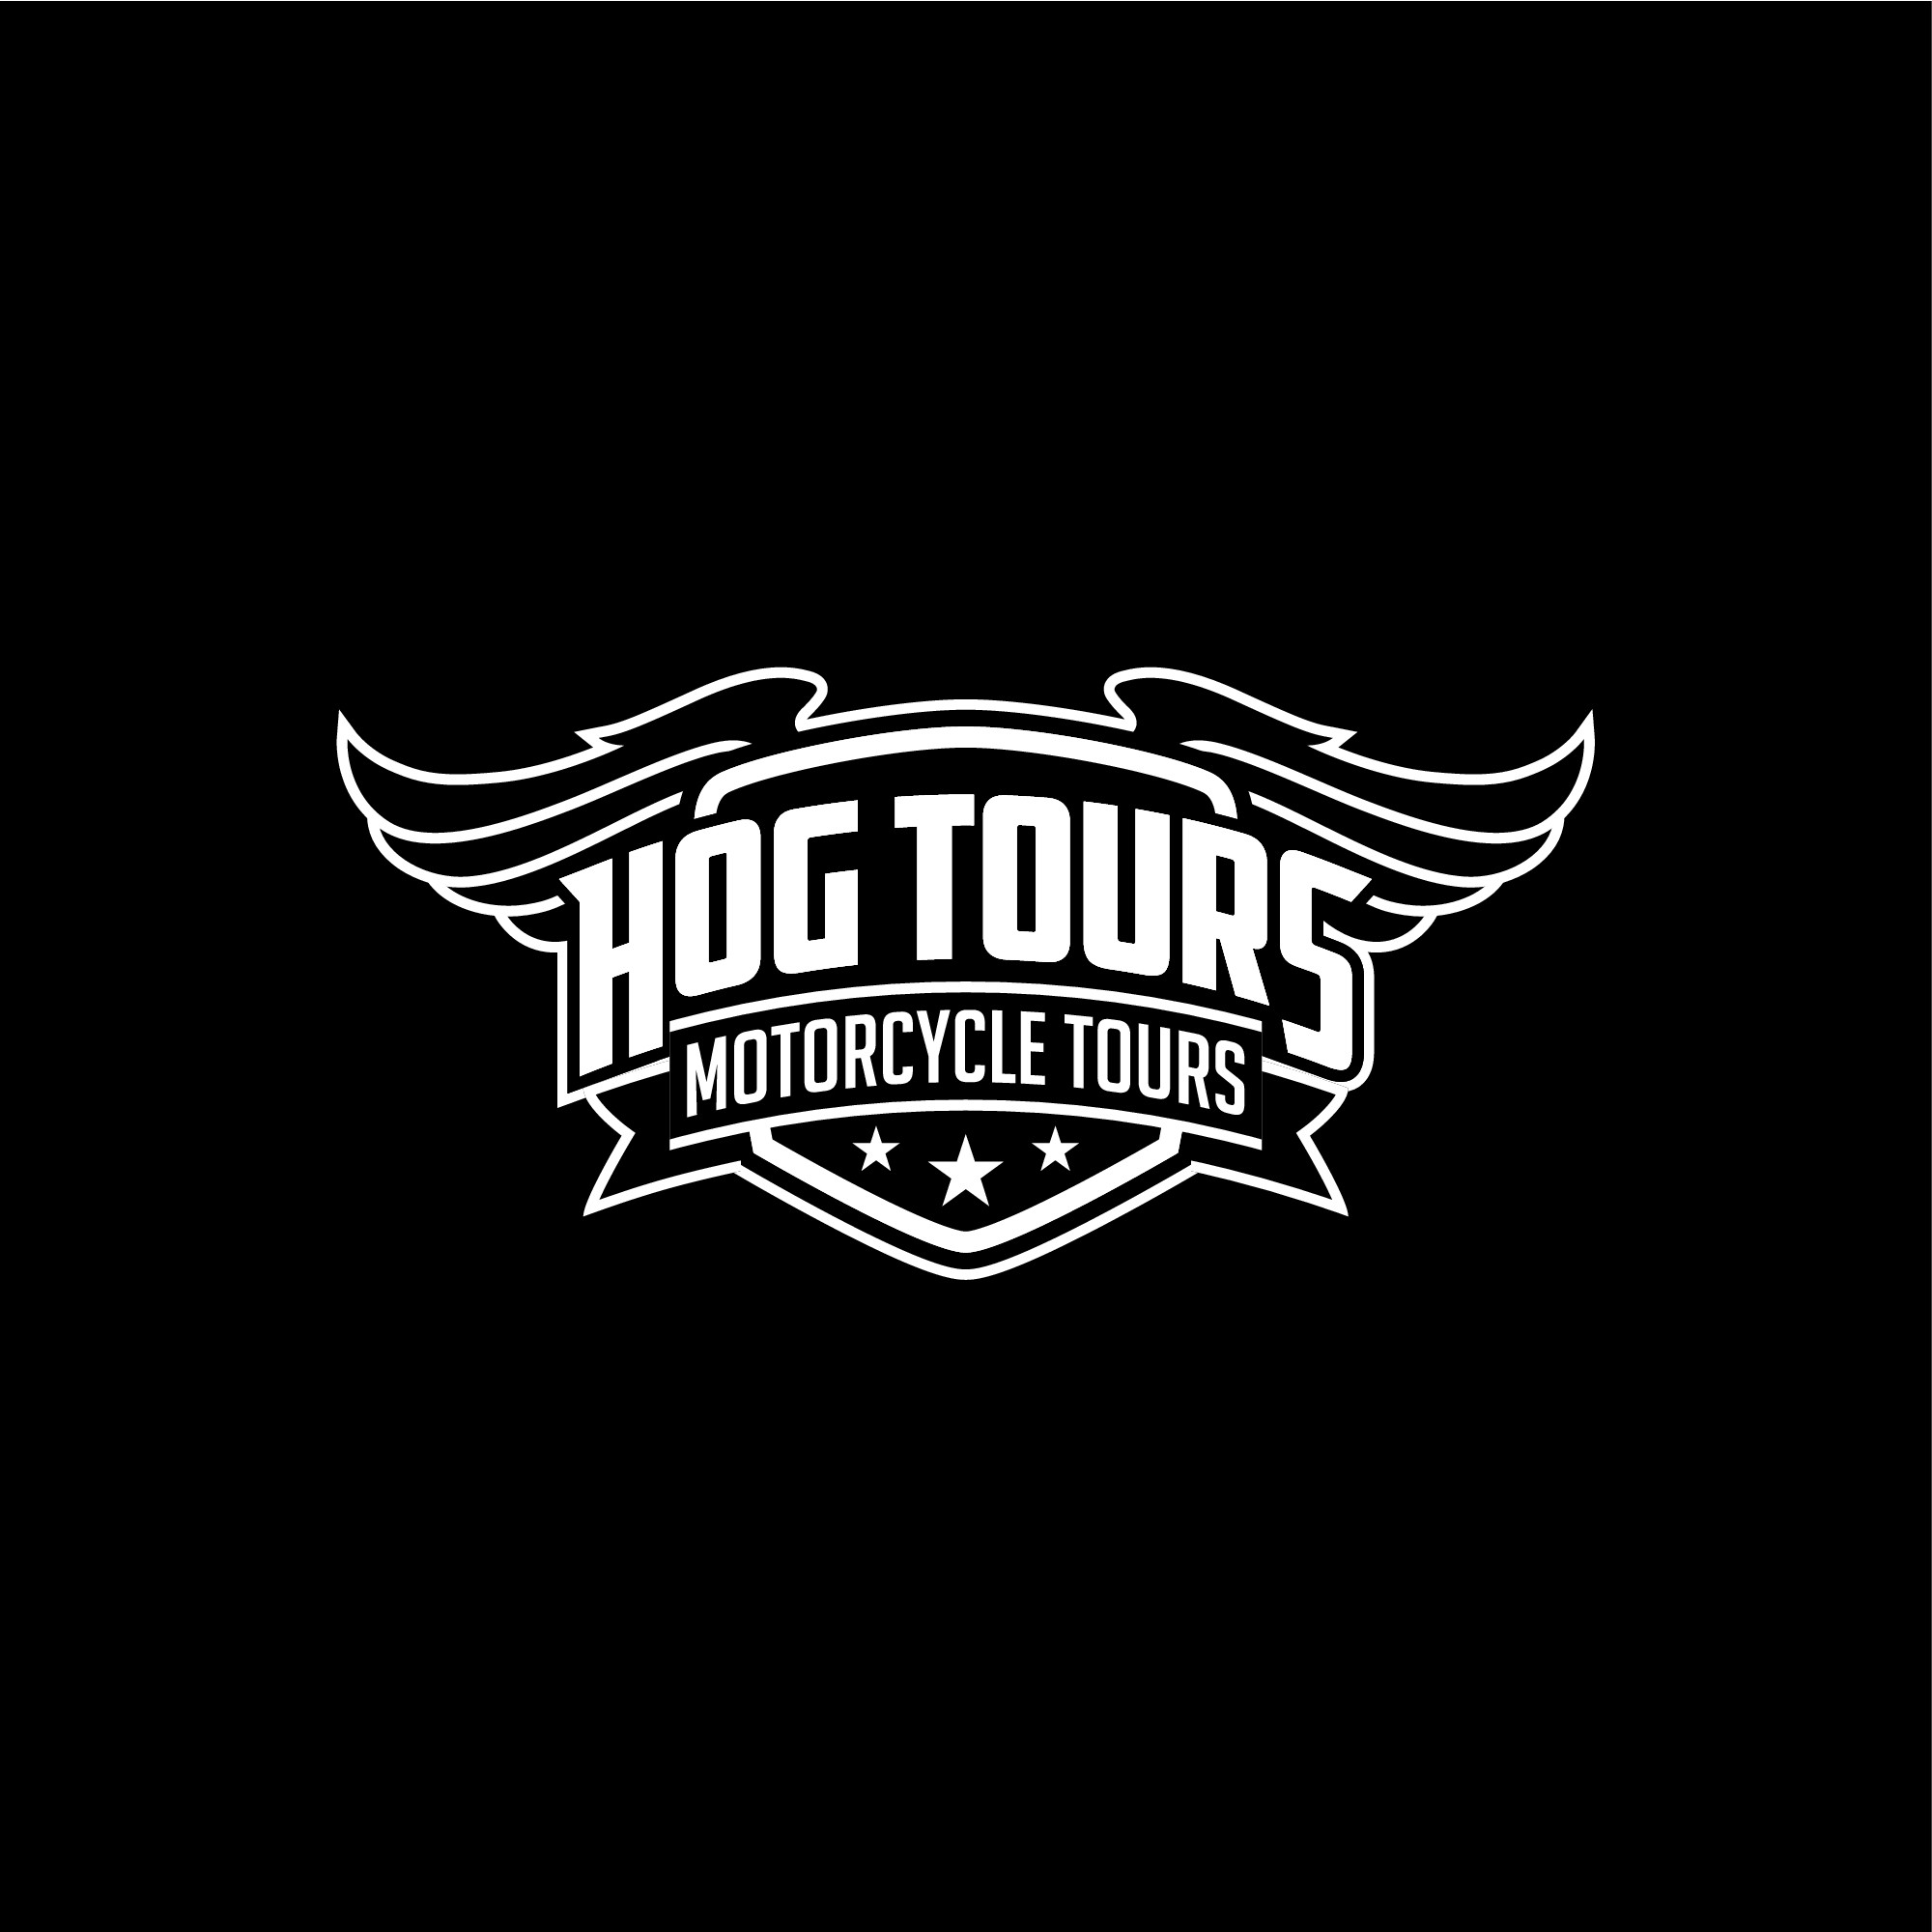 Motorcycle Tour Company Logo Needed